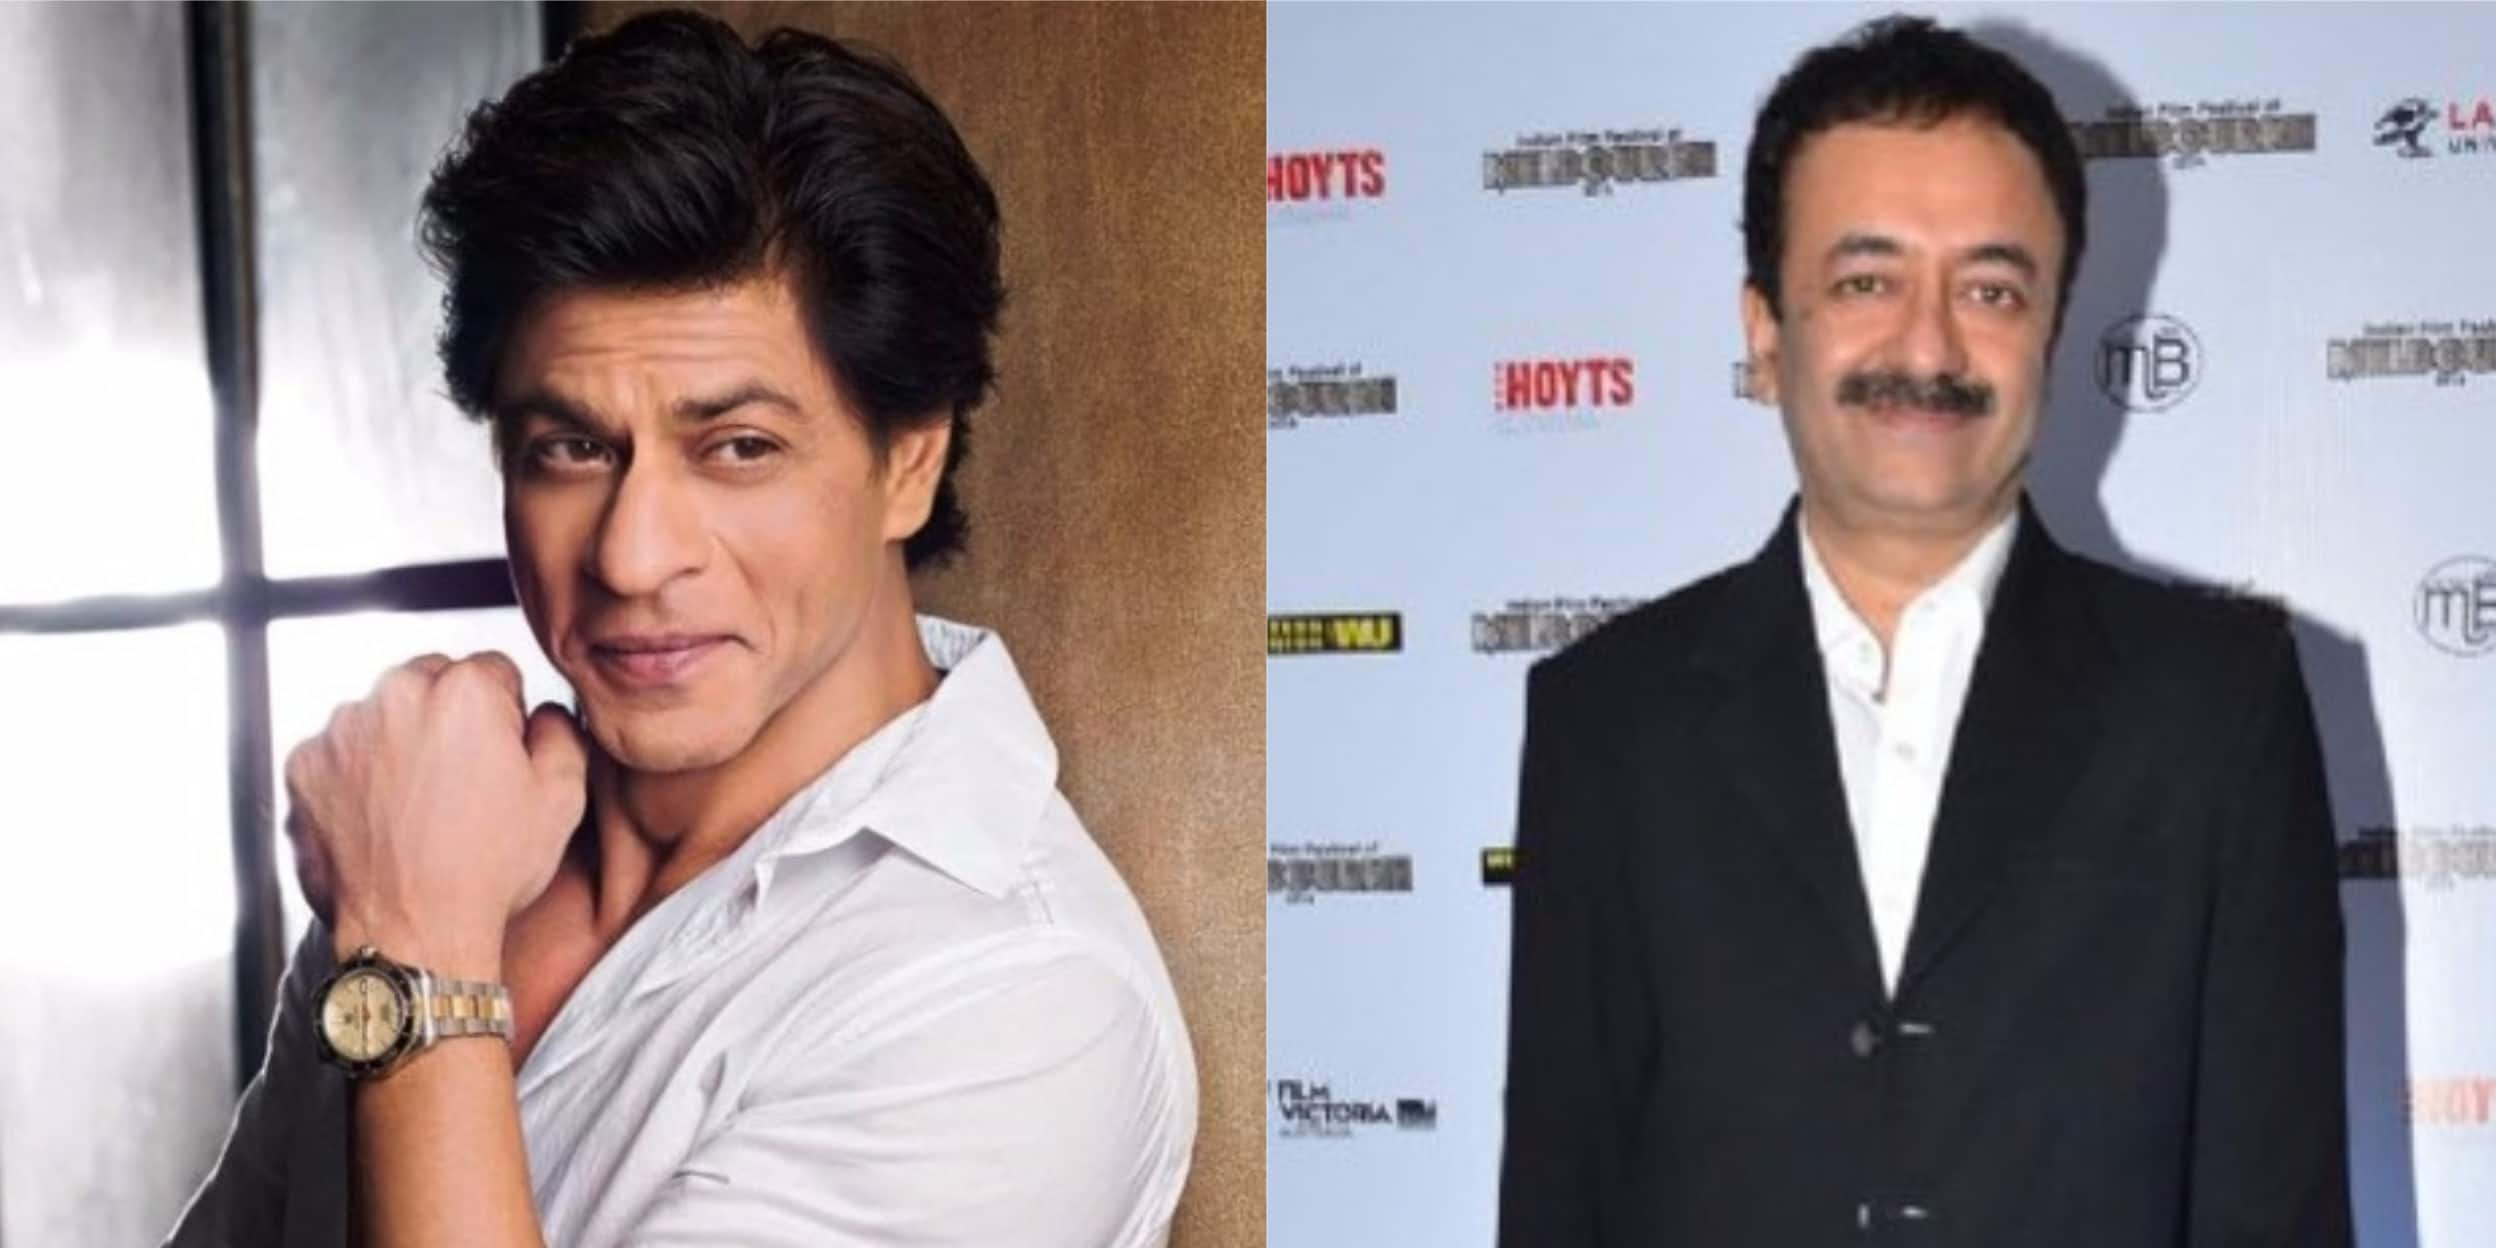 After His Own Issues Shah Rukh Khan To Now Star In A Light Hearted Film Based On Immigration With Rajkumar Hirani Desimartini